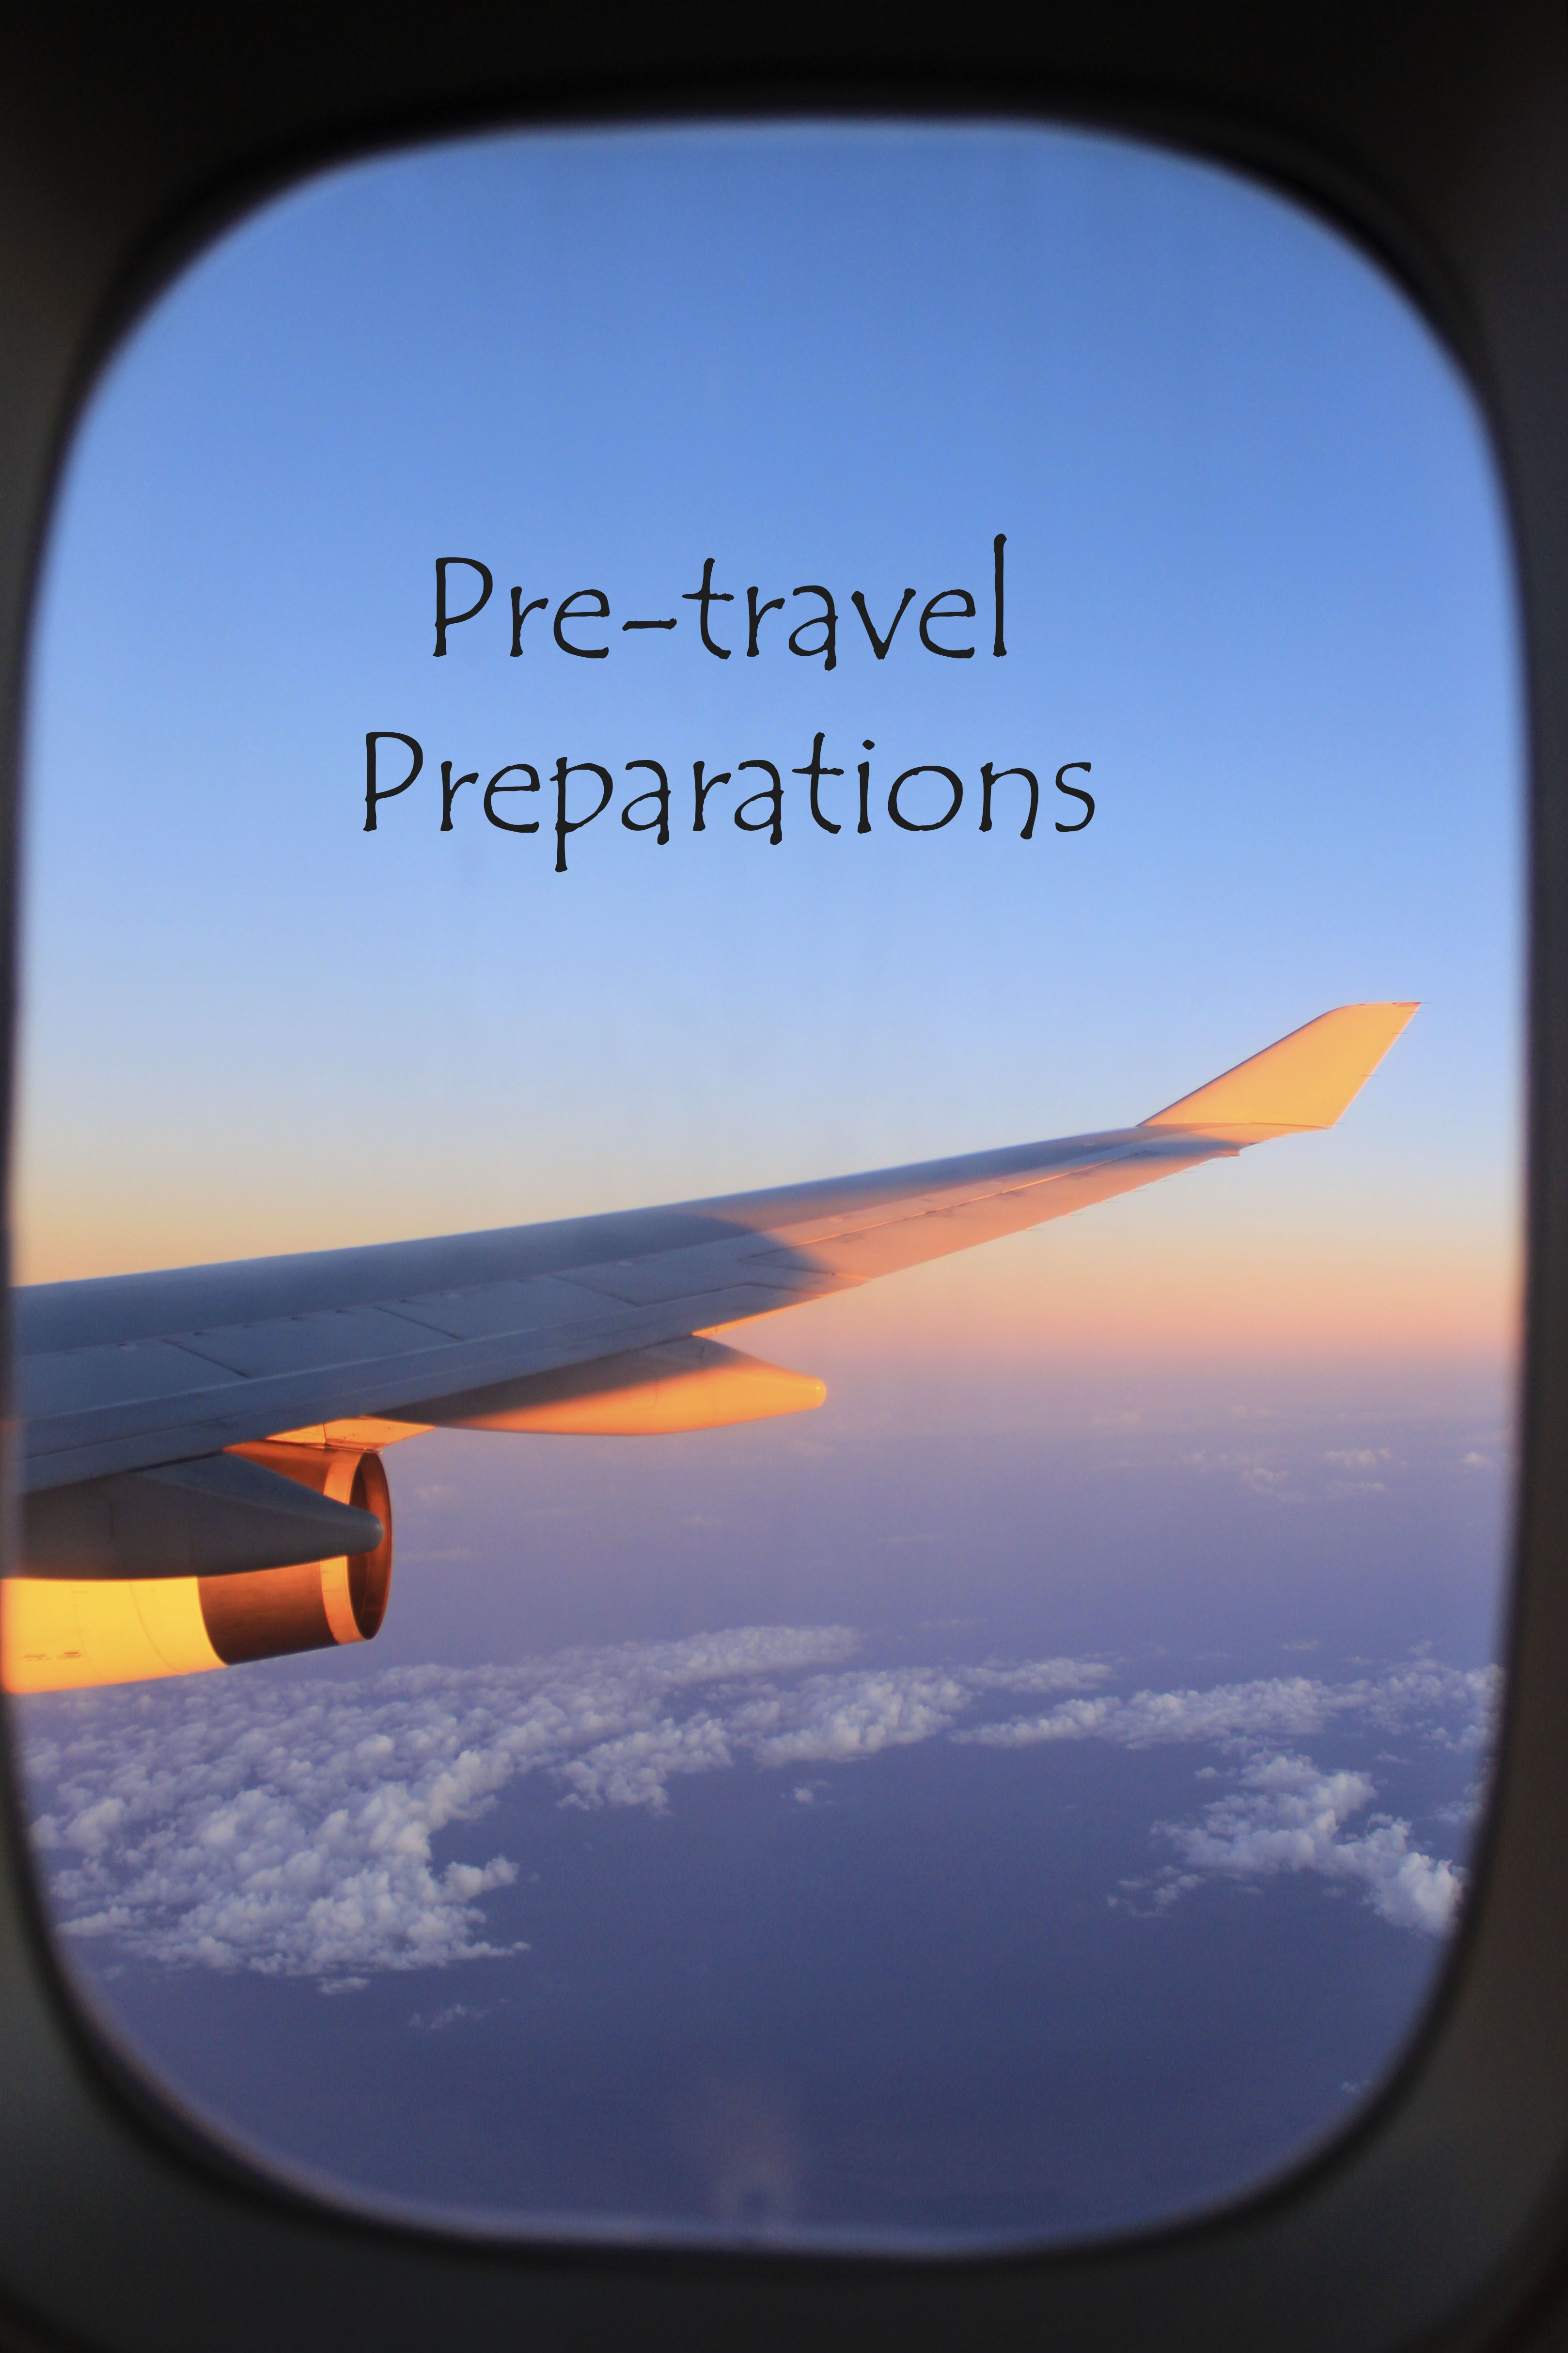 Want to make sure you have done everything needed before travelling? Check out this list and timeline http://aworldofbackpacking.com/pre-travel-preparations/